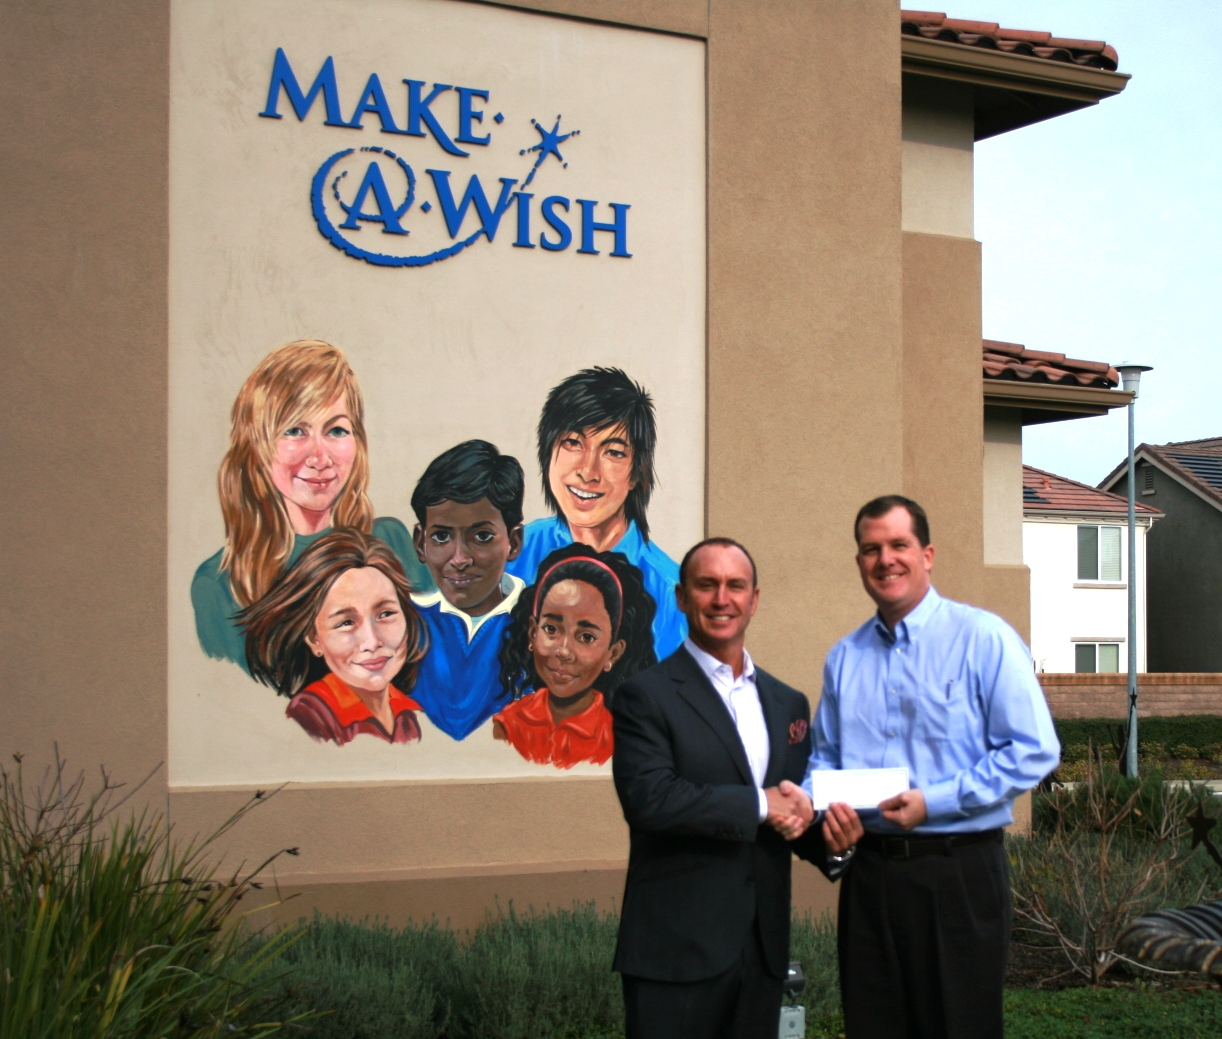 Keith Springer presents check to Make-A-Wish